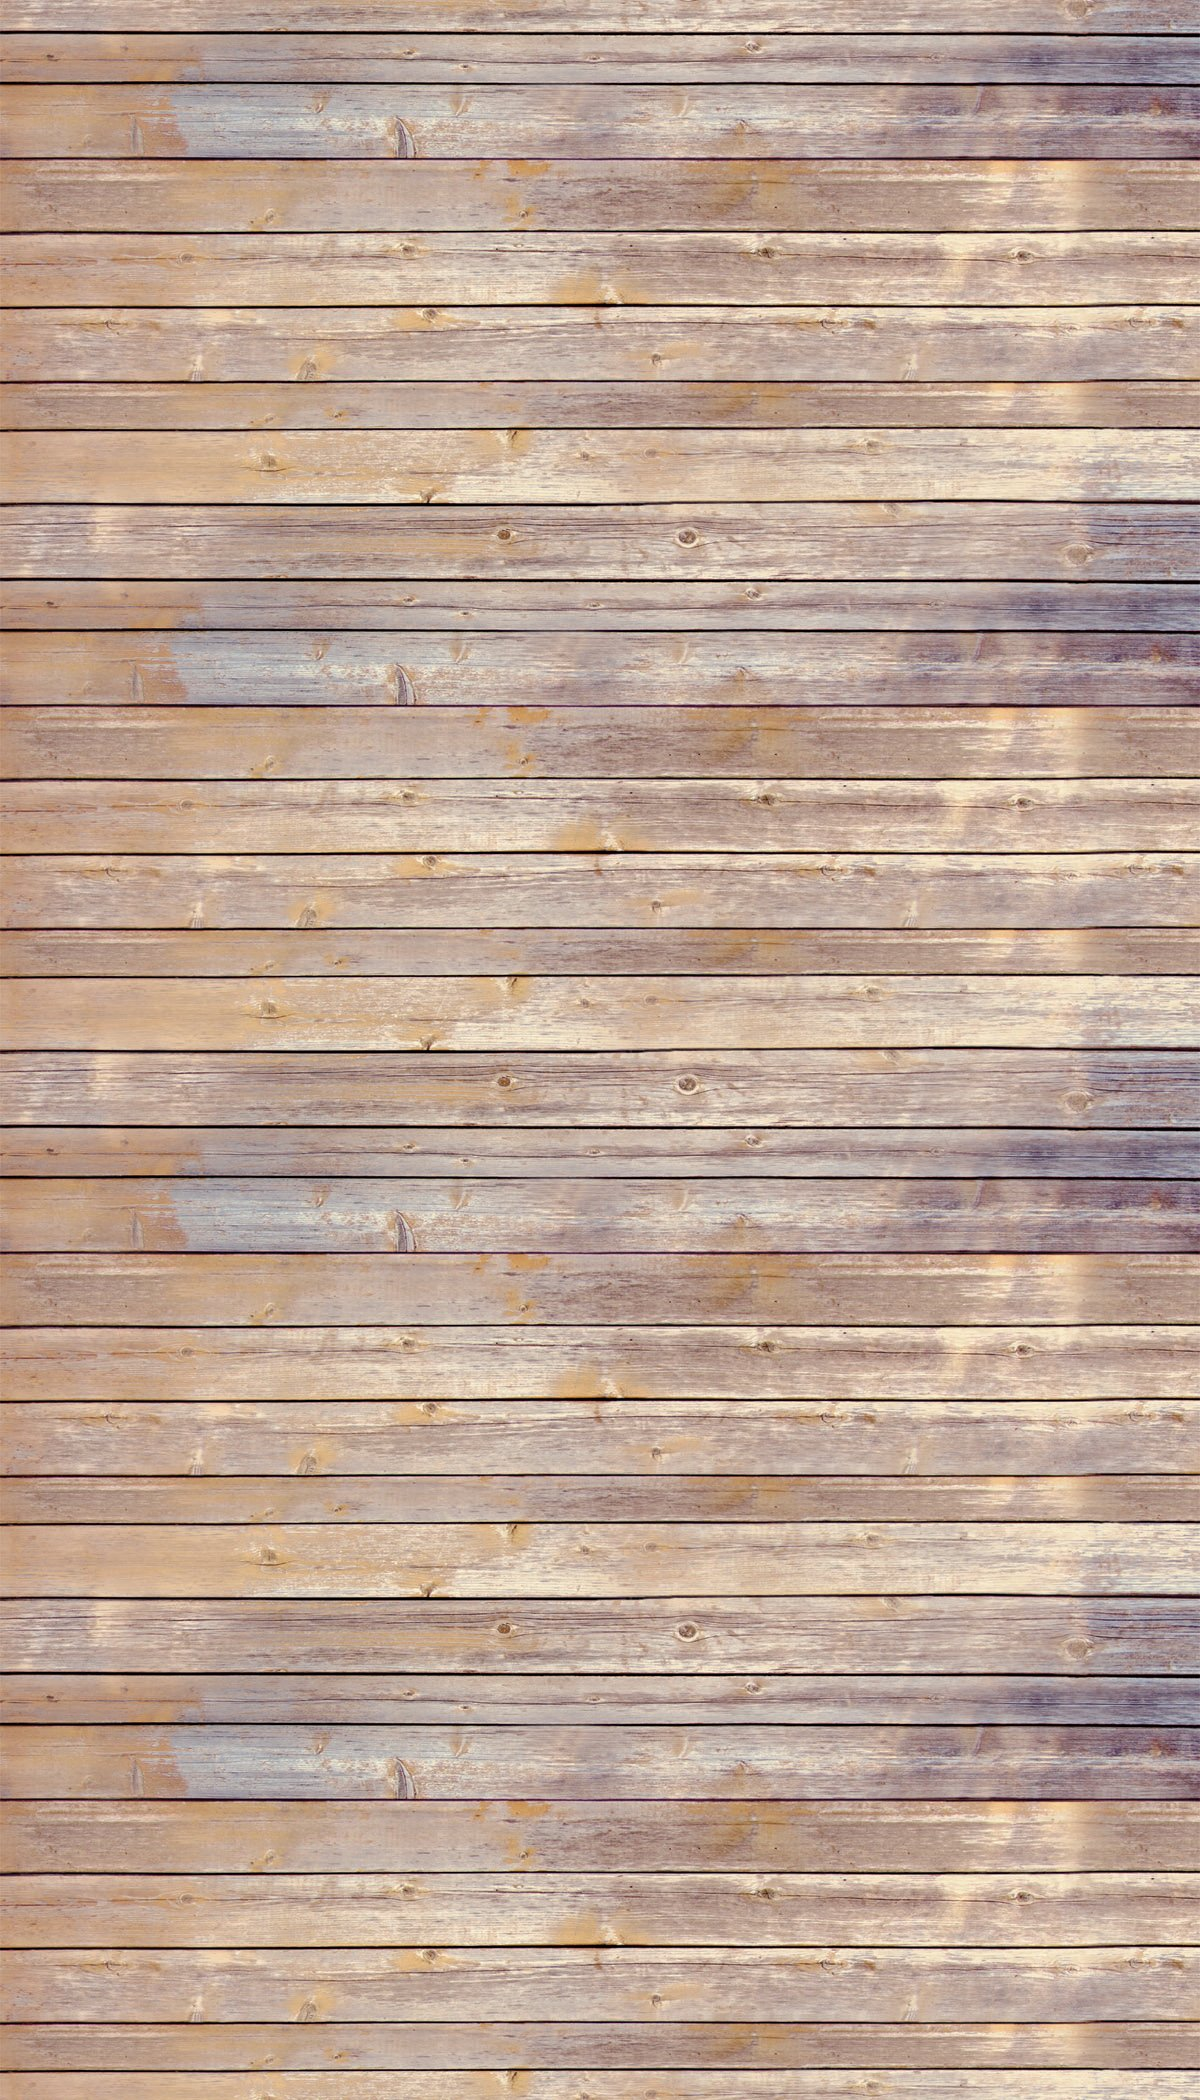 Ella Bella Photography Backdrop Paper, Vintage Wood, 48'' x 12', 1 Roll